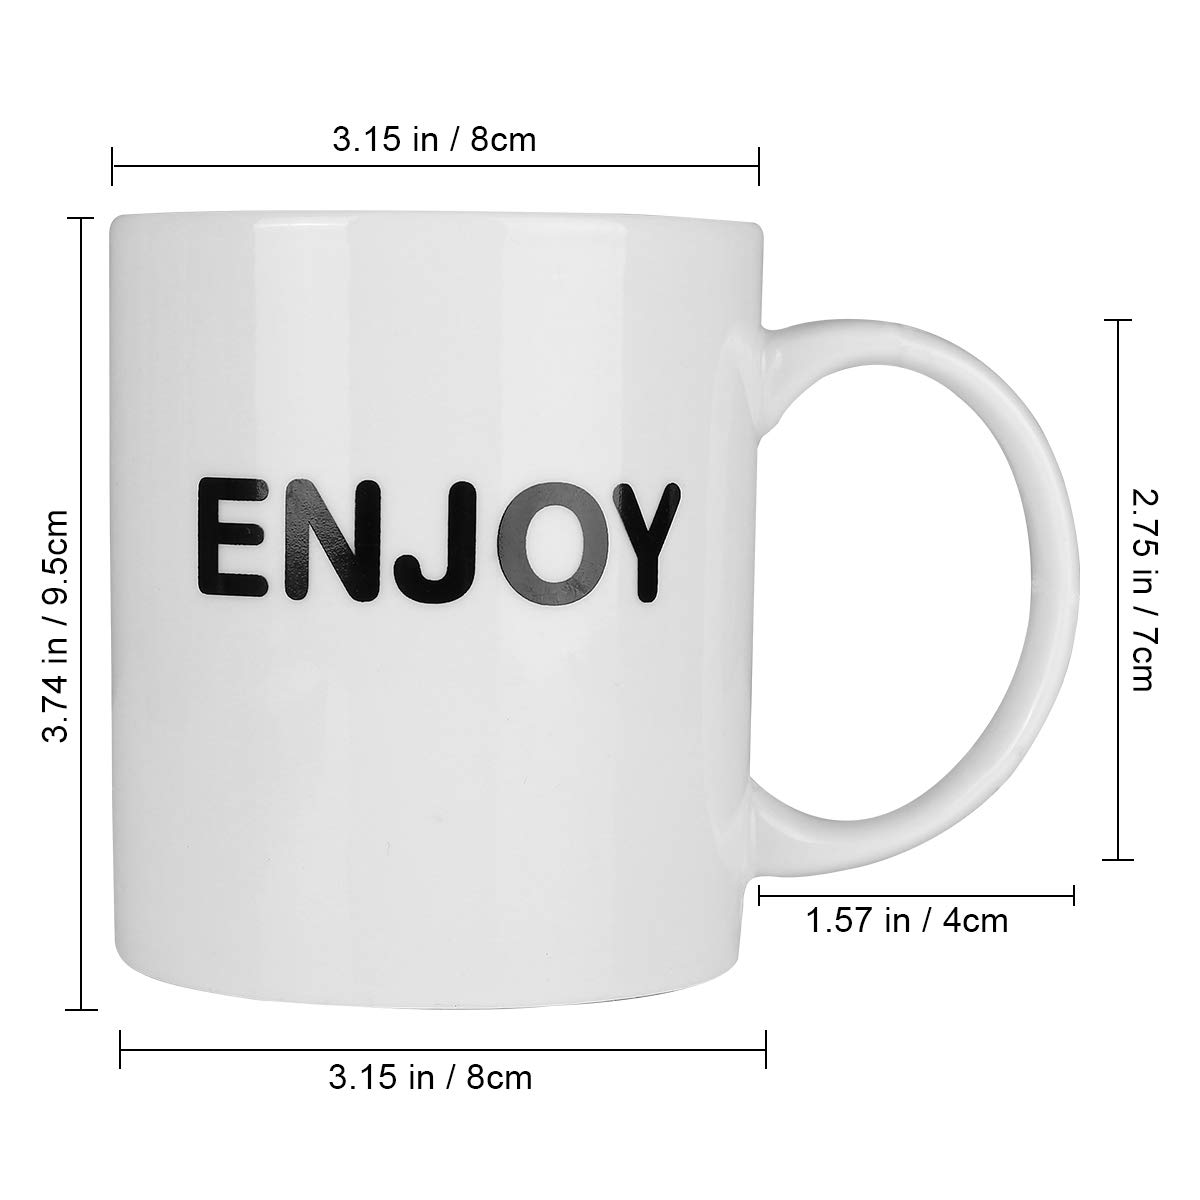 HANHAOPEAK Coffee Mug, 11oz Funny Coffee Mug: Enjoy, Unique Ceramic Novelty Holiday Christmas Hanukkah Gift for Men and Women Who Love Tea Mugs Coffee Cups, Suitable for Office and Home by HANHAOPEAK (Image #3)